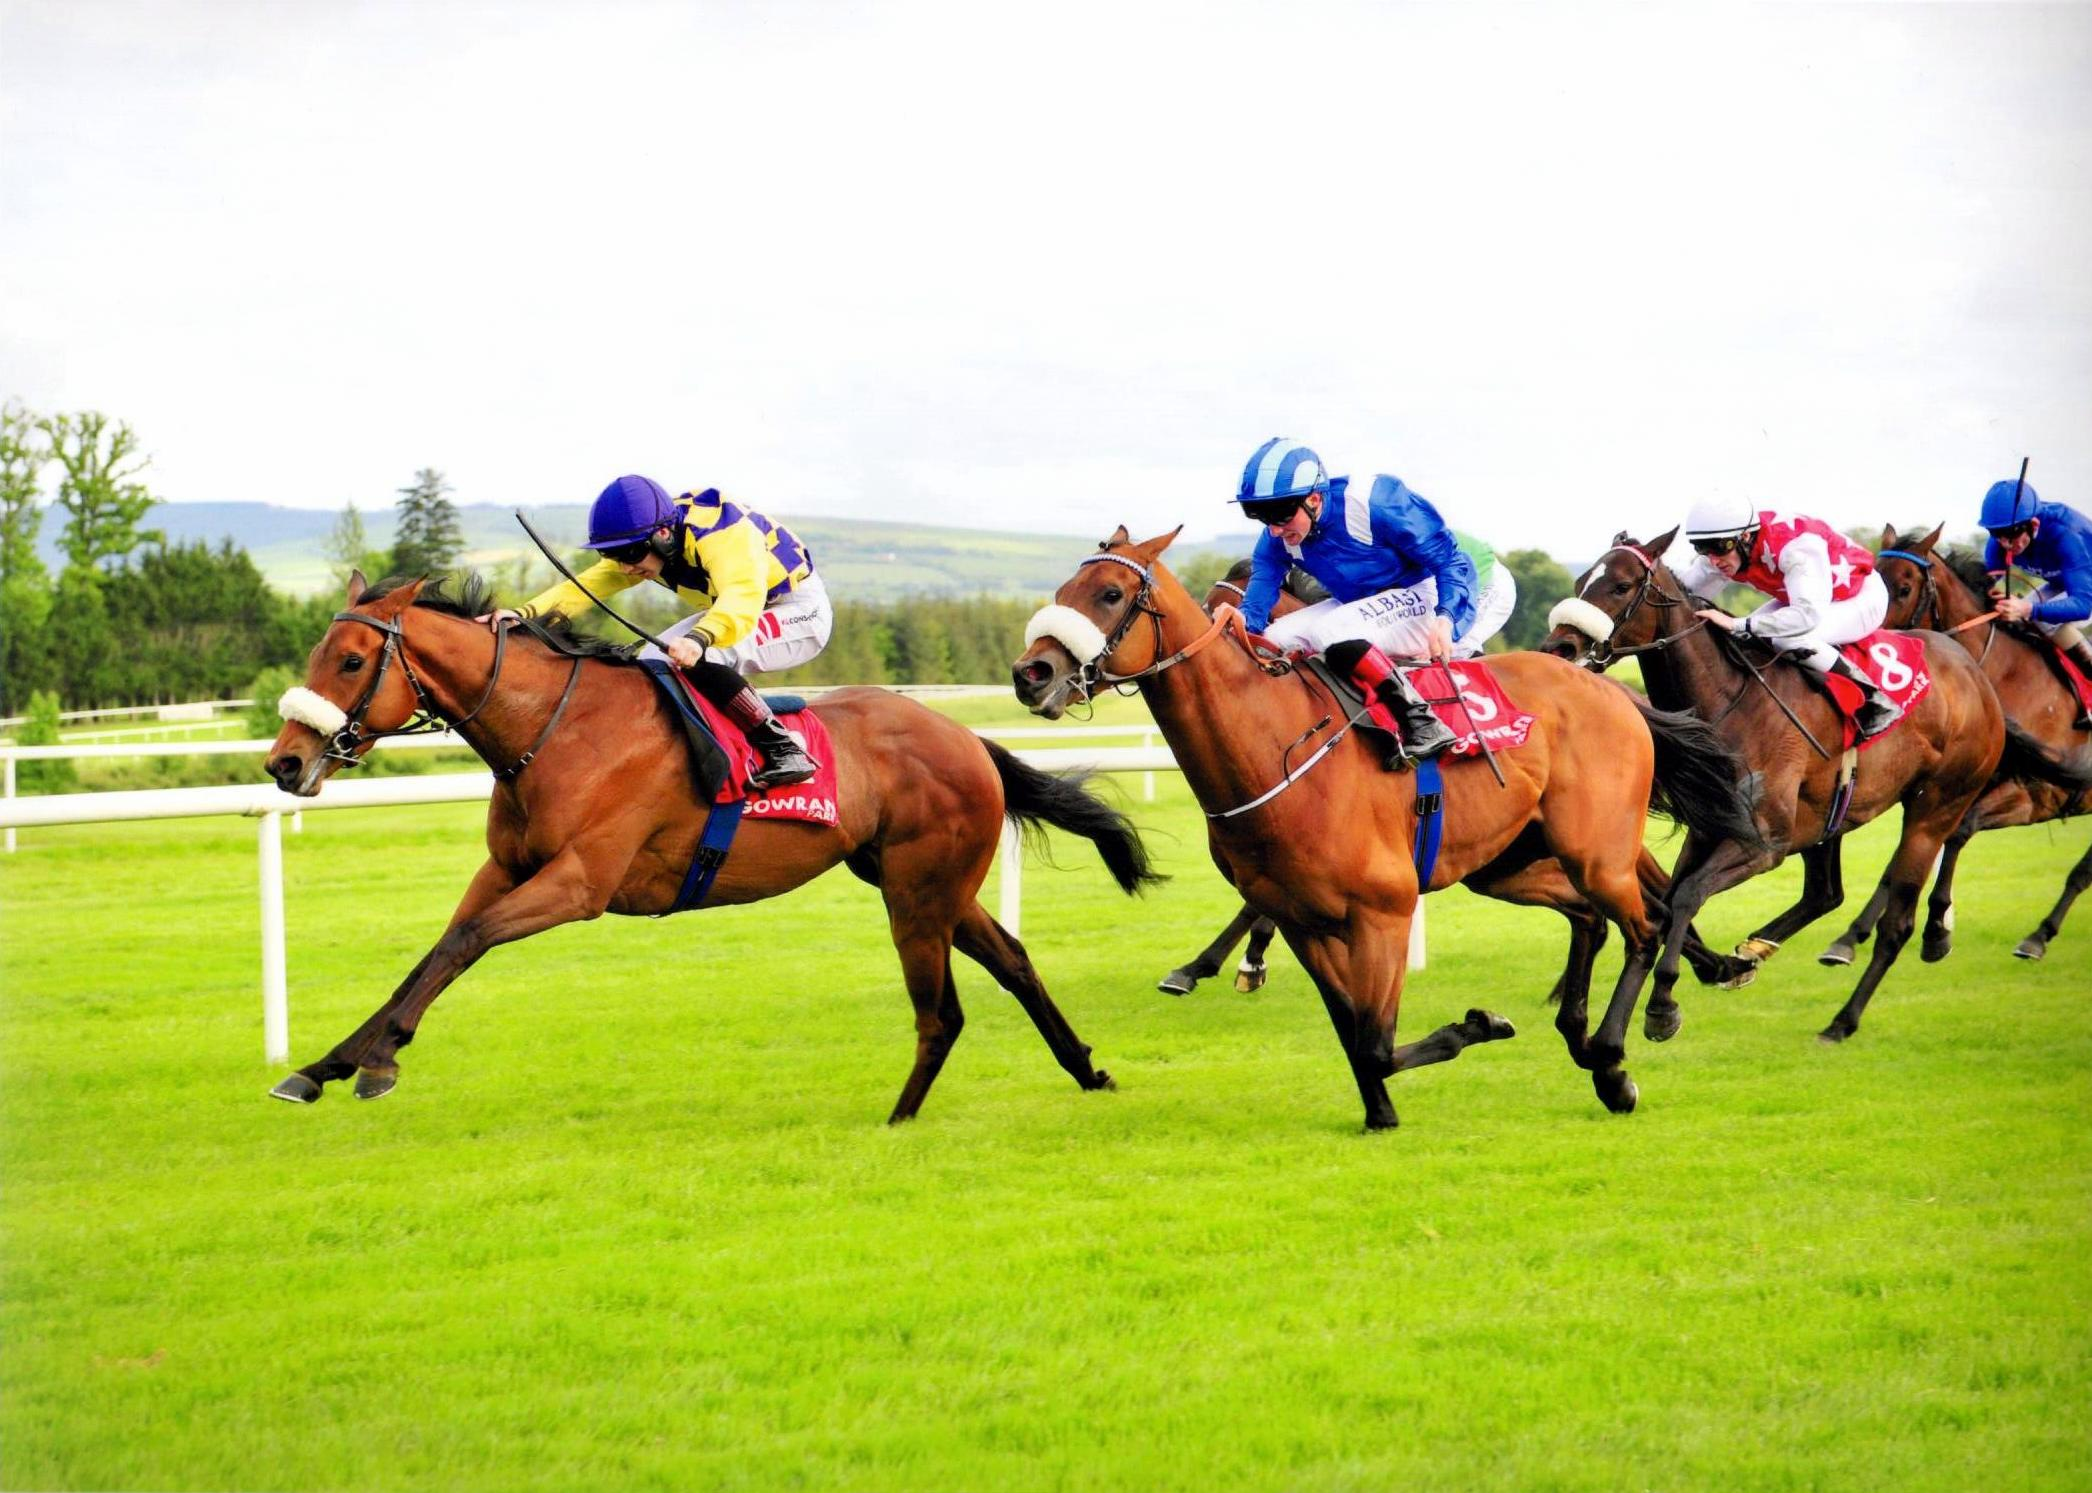 RECKLESS ENDEAVOUR scores in style at Gowran Park 25 May 2016